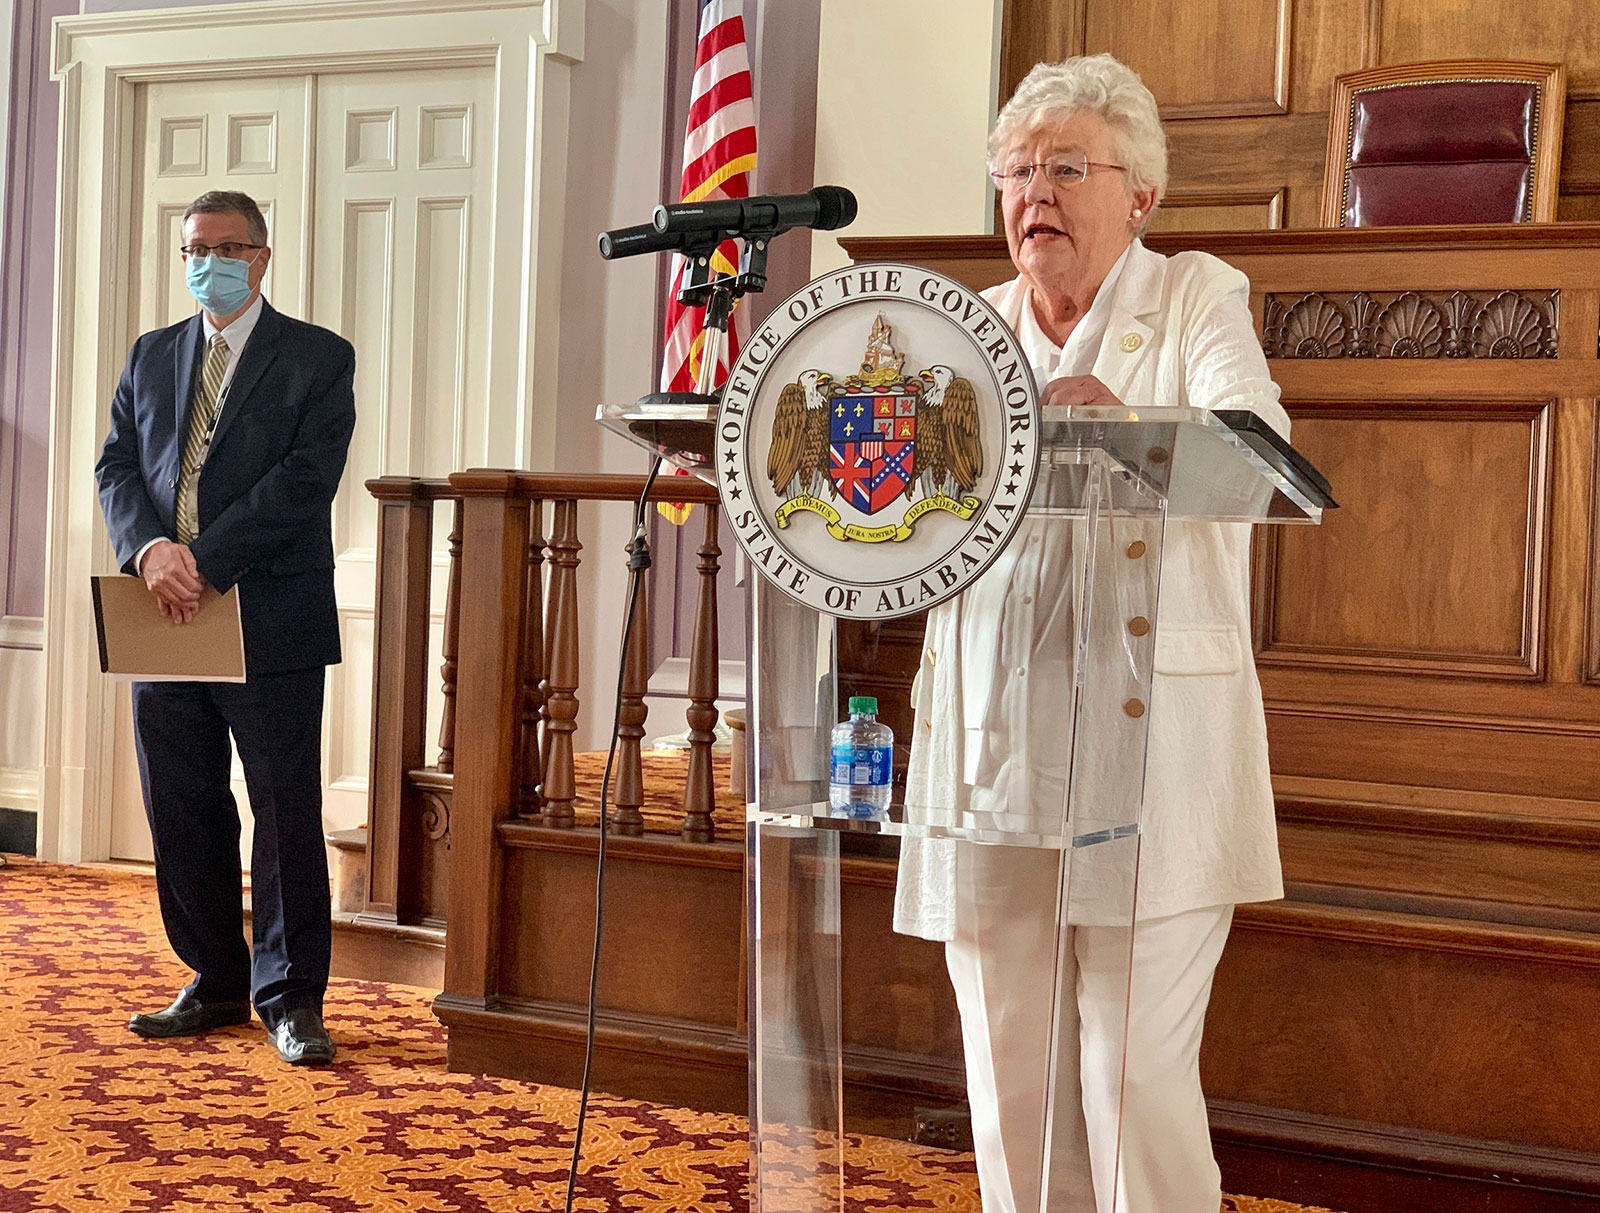 Alabama Gov. Kay Ivey speaks during a news conference in Montgomery on Wednesday, July 29.